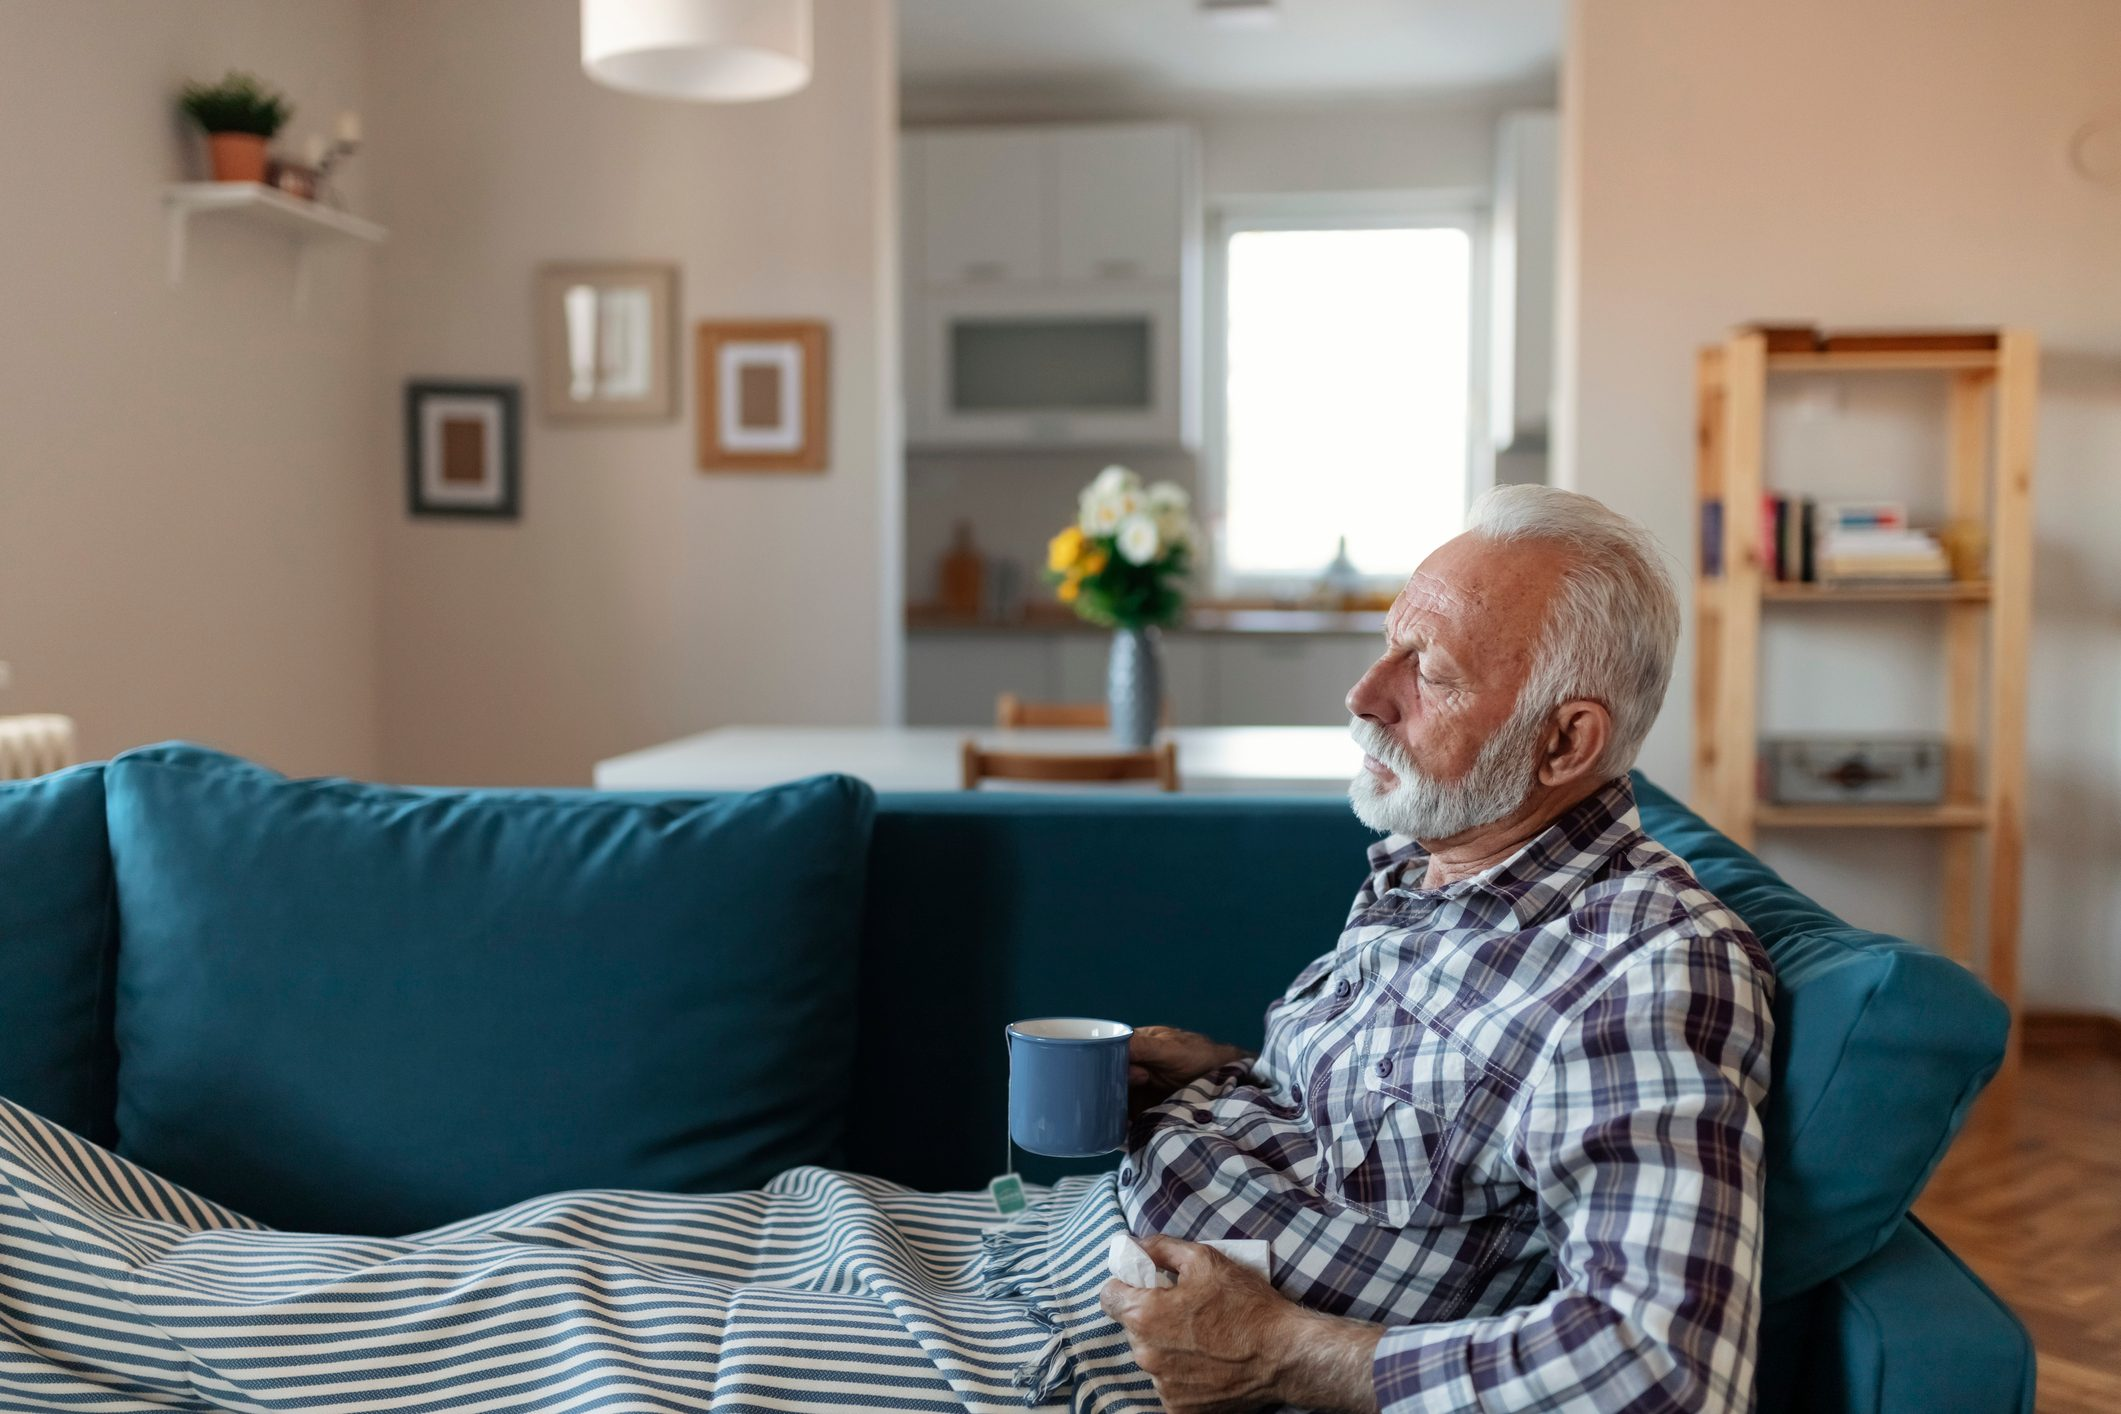 man sick on couch shortness of breath